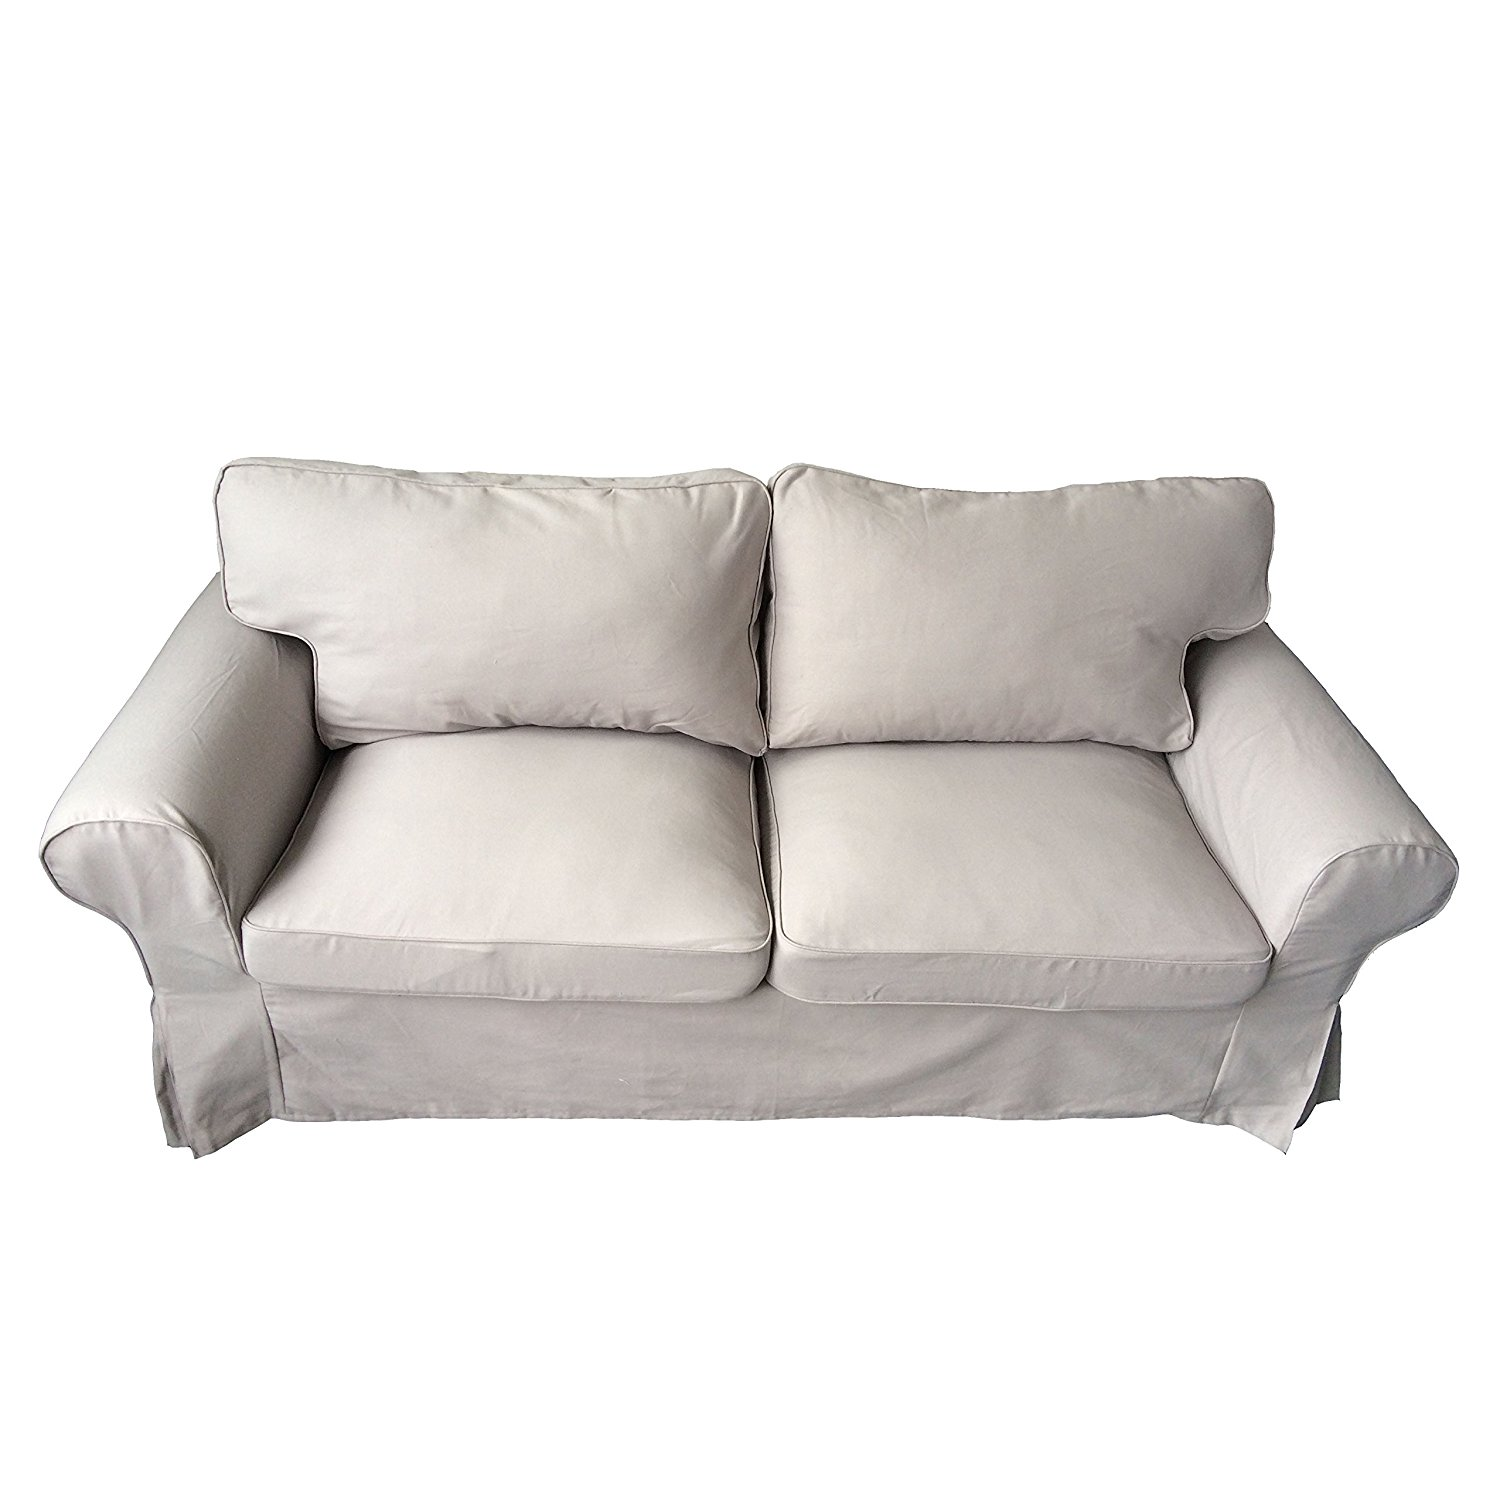 2 Seater Ikea Sofa Cover Buy The Ektorp Two Seater Sofa Bed Cover Durable Heavy Cotton